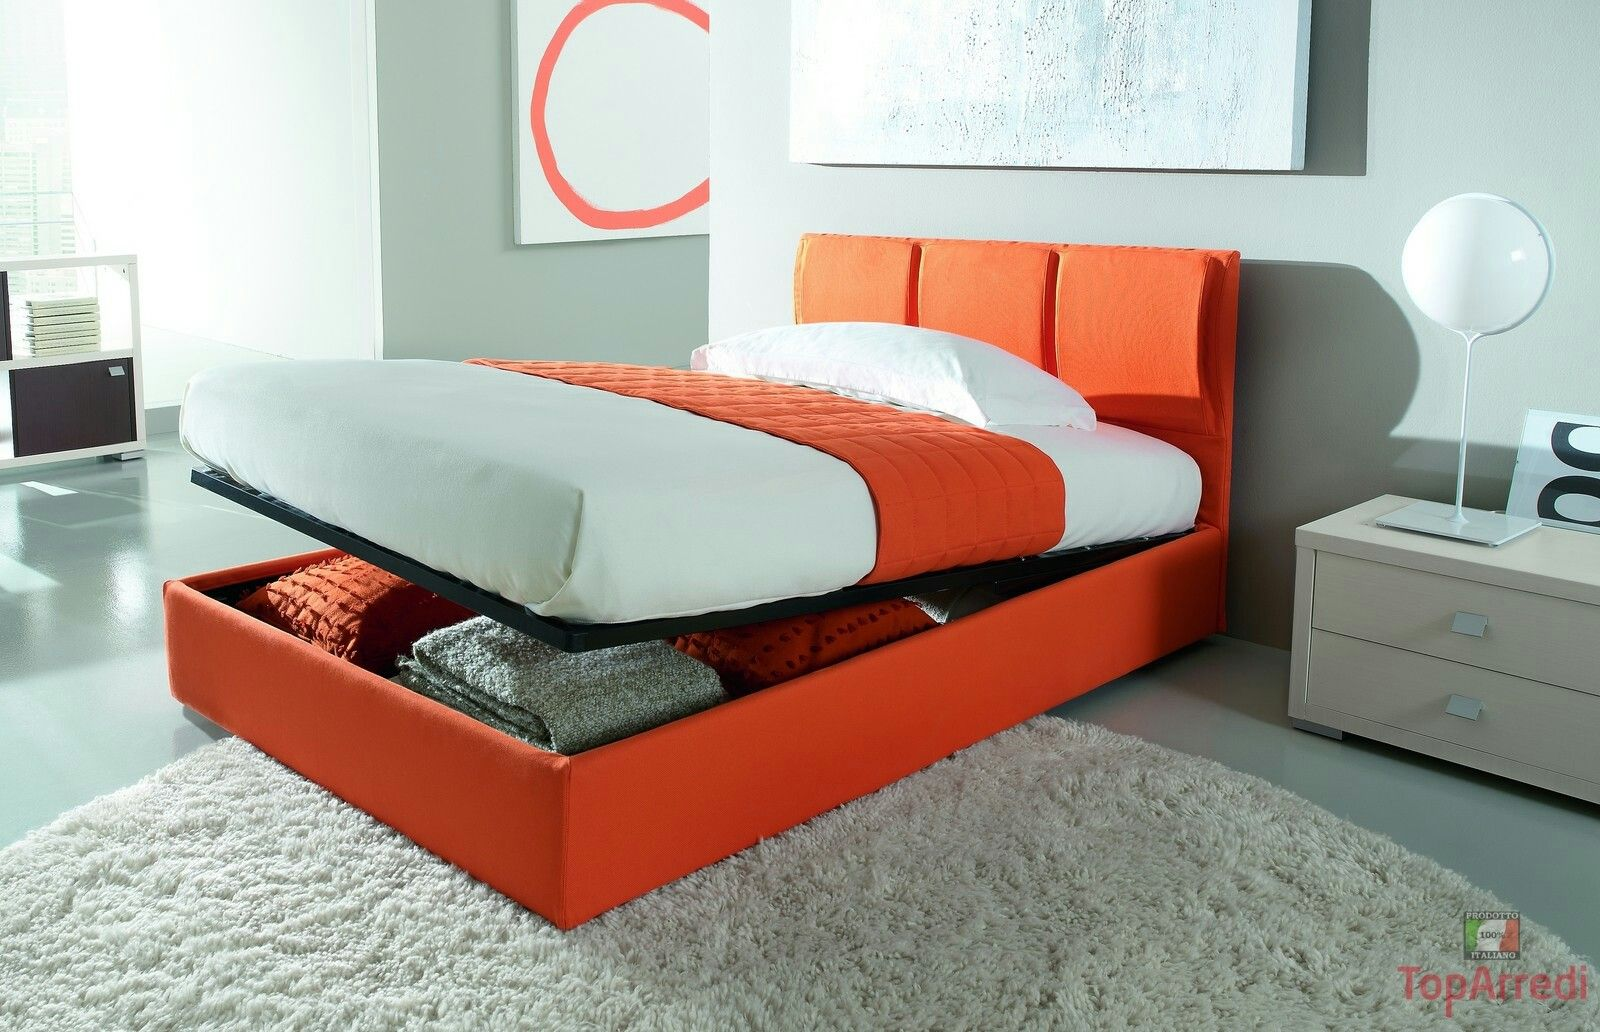 Pin by covertible couch on ideas para tienda Furniture